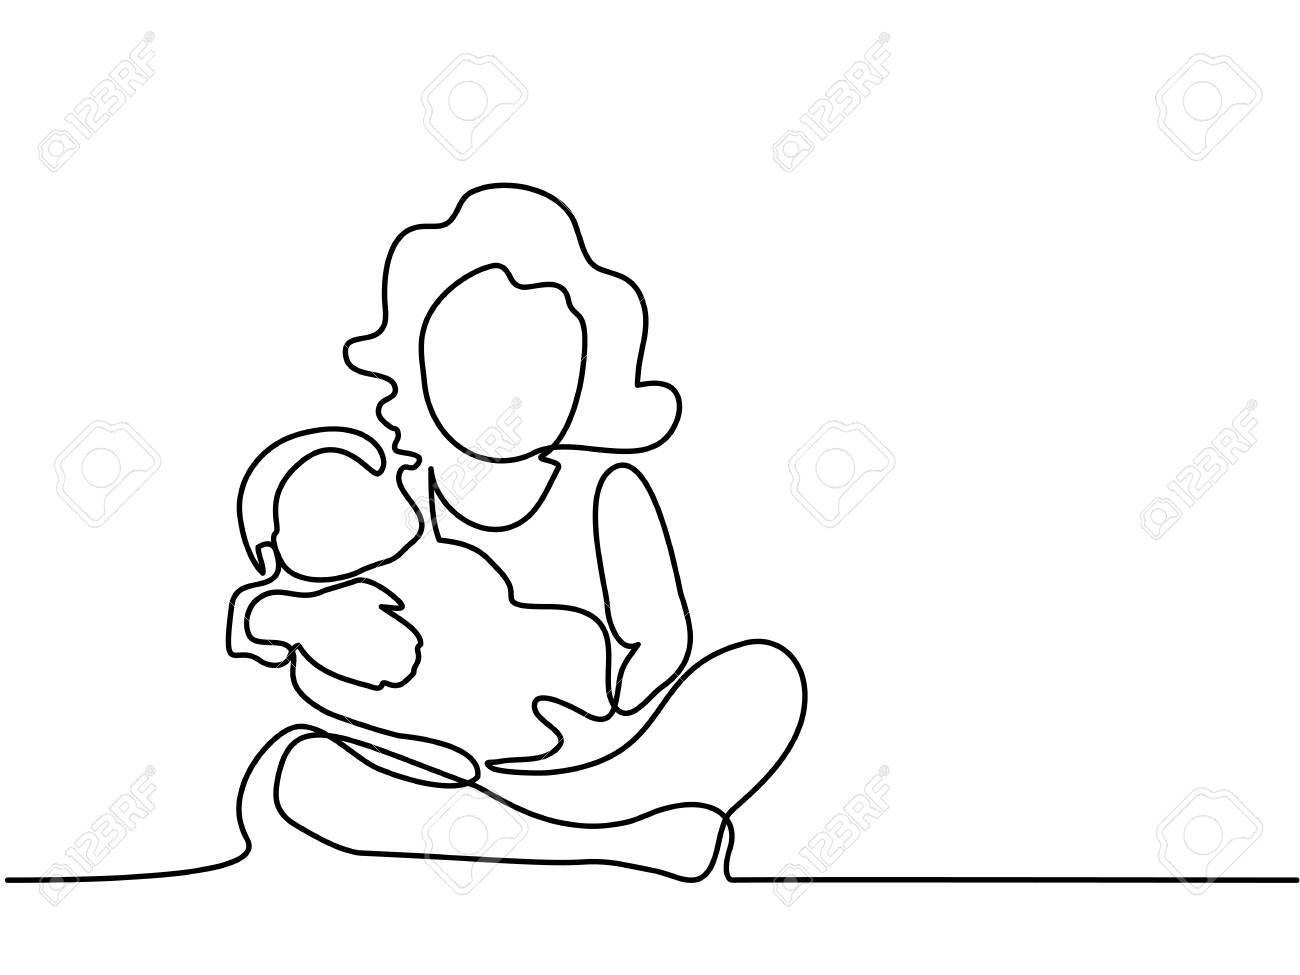 1300x975 Continuous Line Drawing. Mother And Child. Vector Illustration